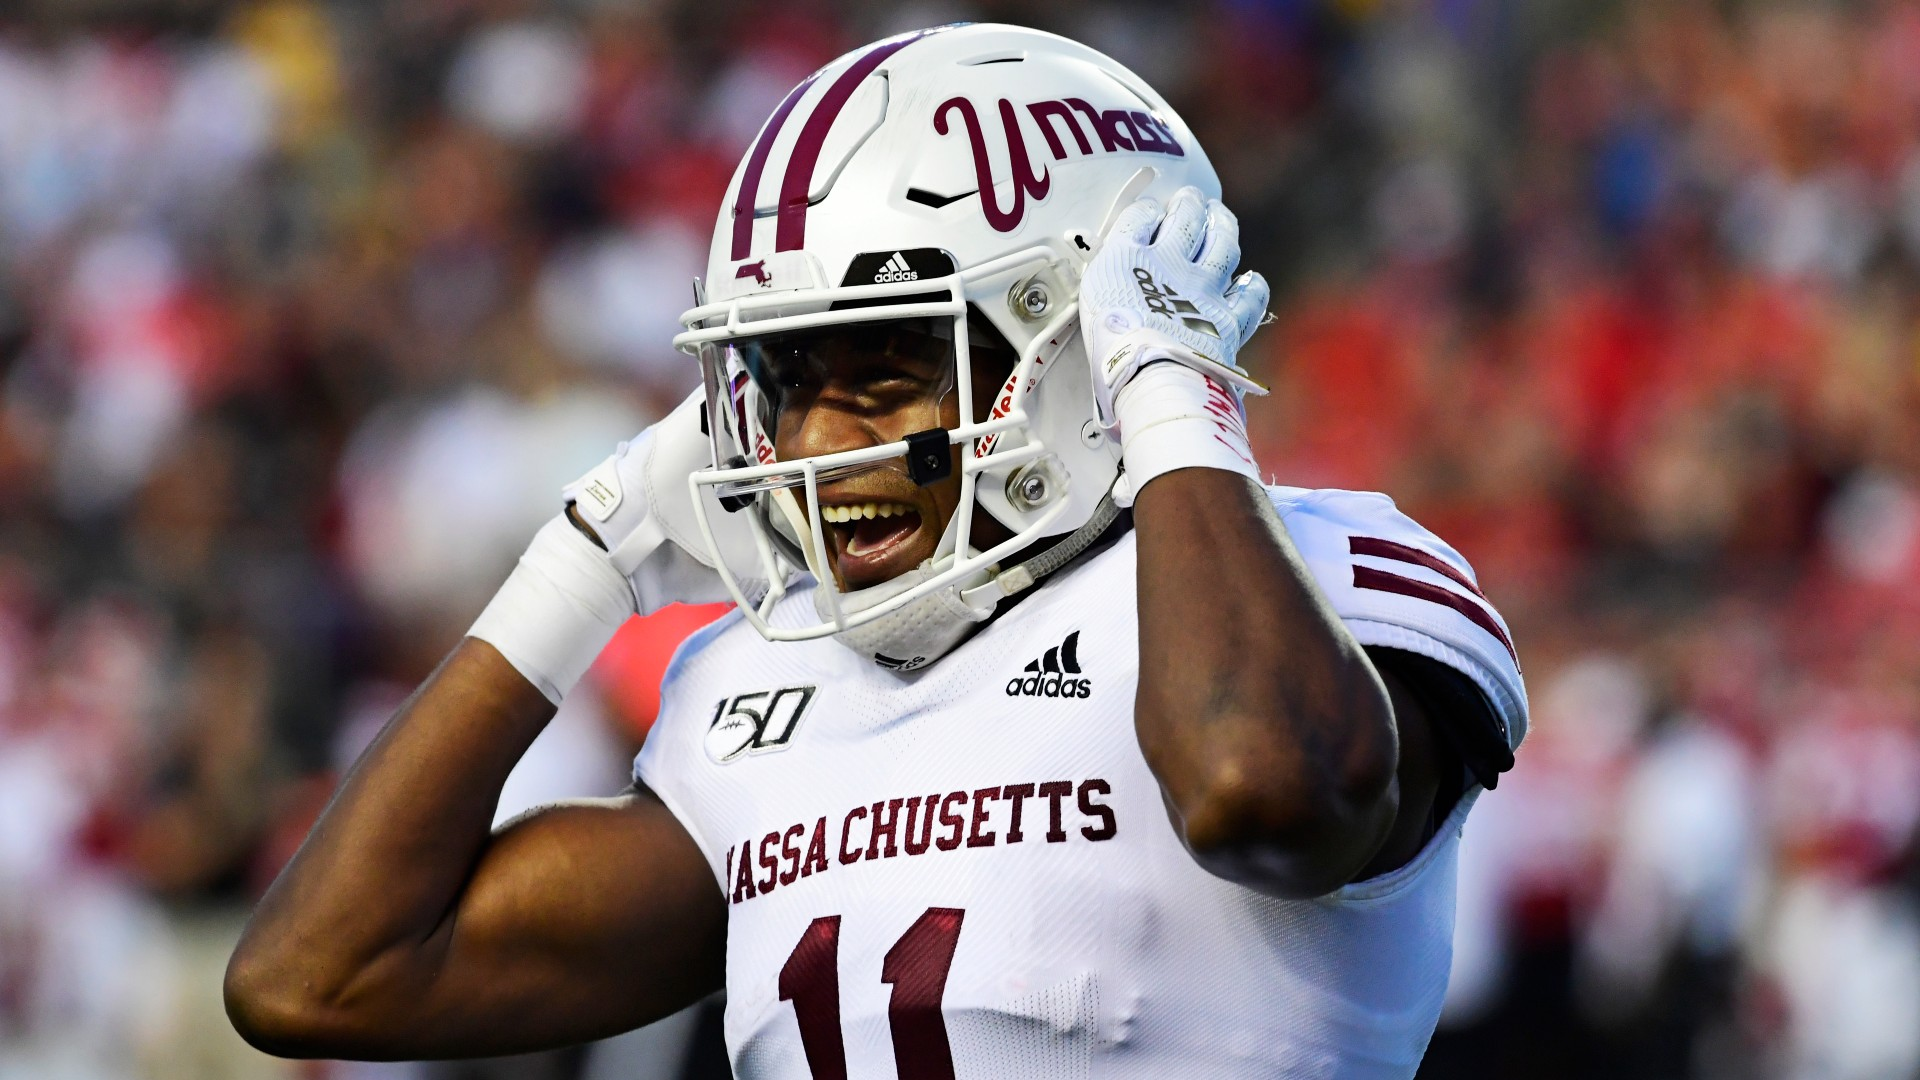 UMass vs. Florida Atlantic Odds & Picks: Value Bet on Over/Under in Windy Friday Weather article feature image